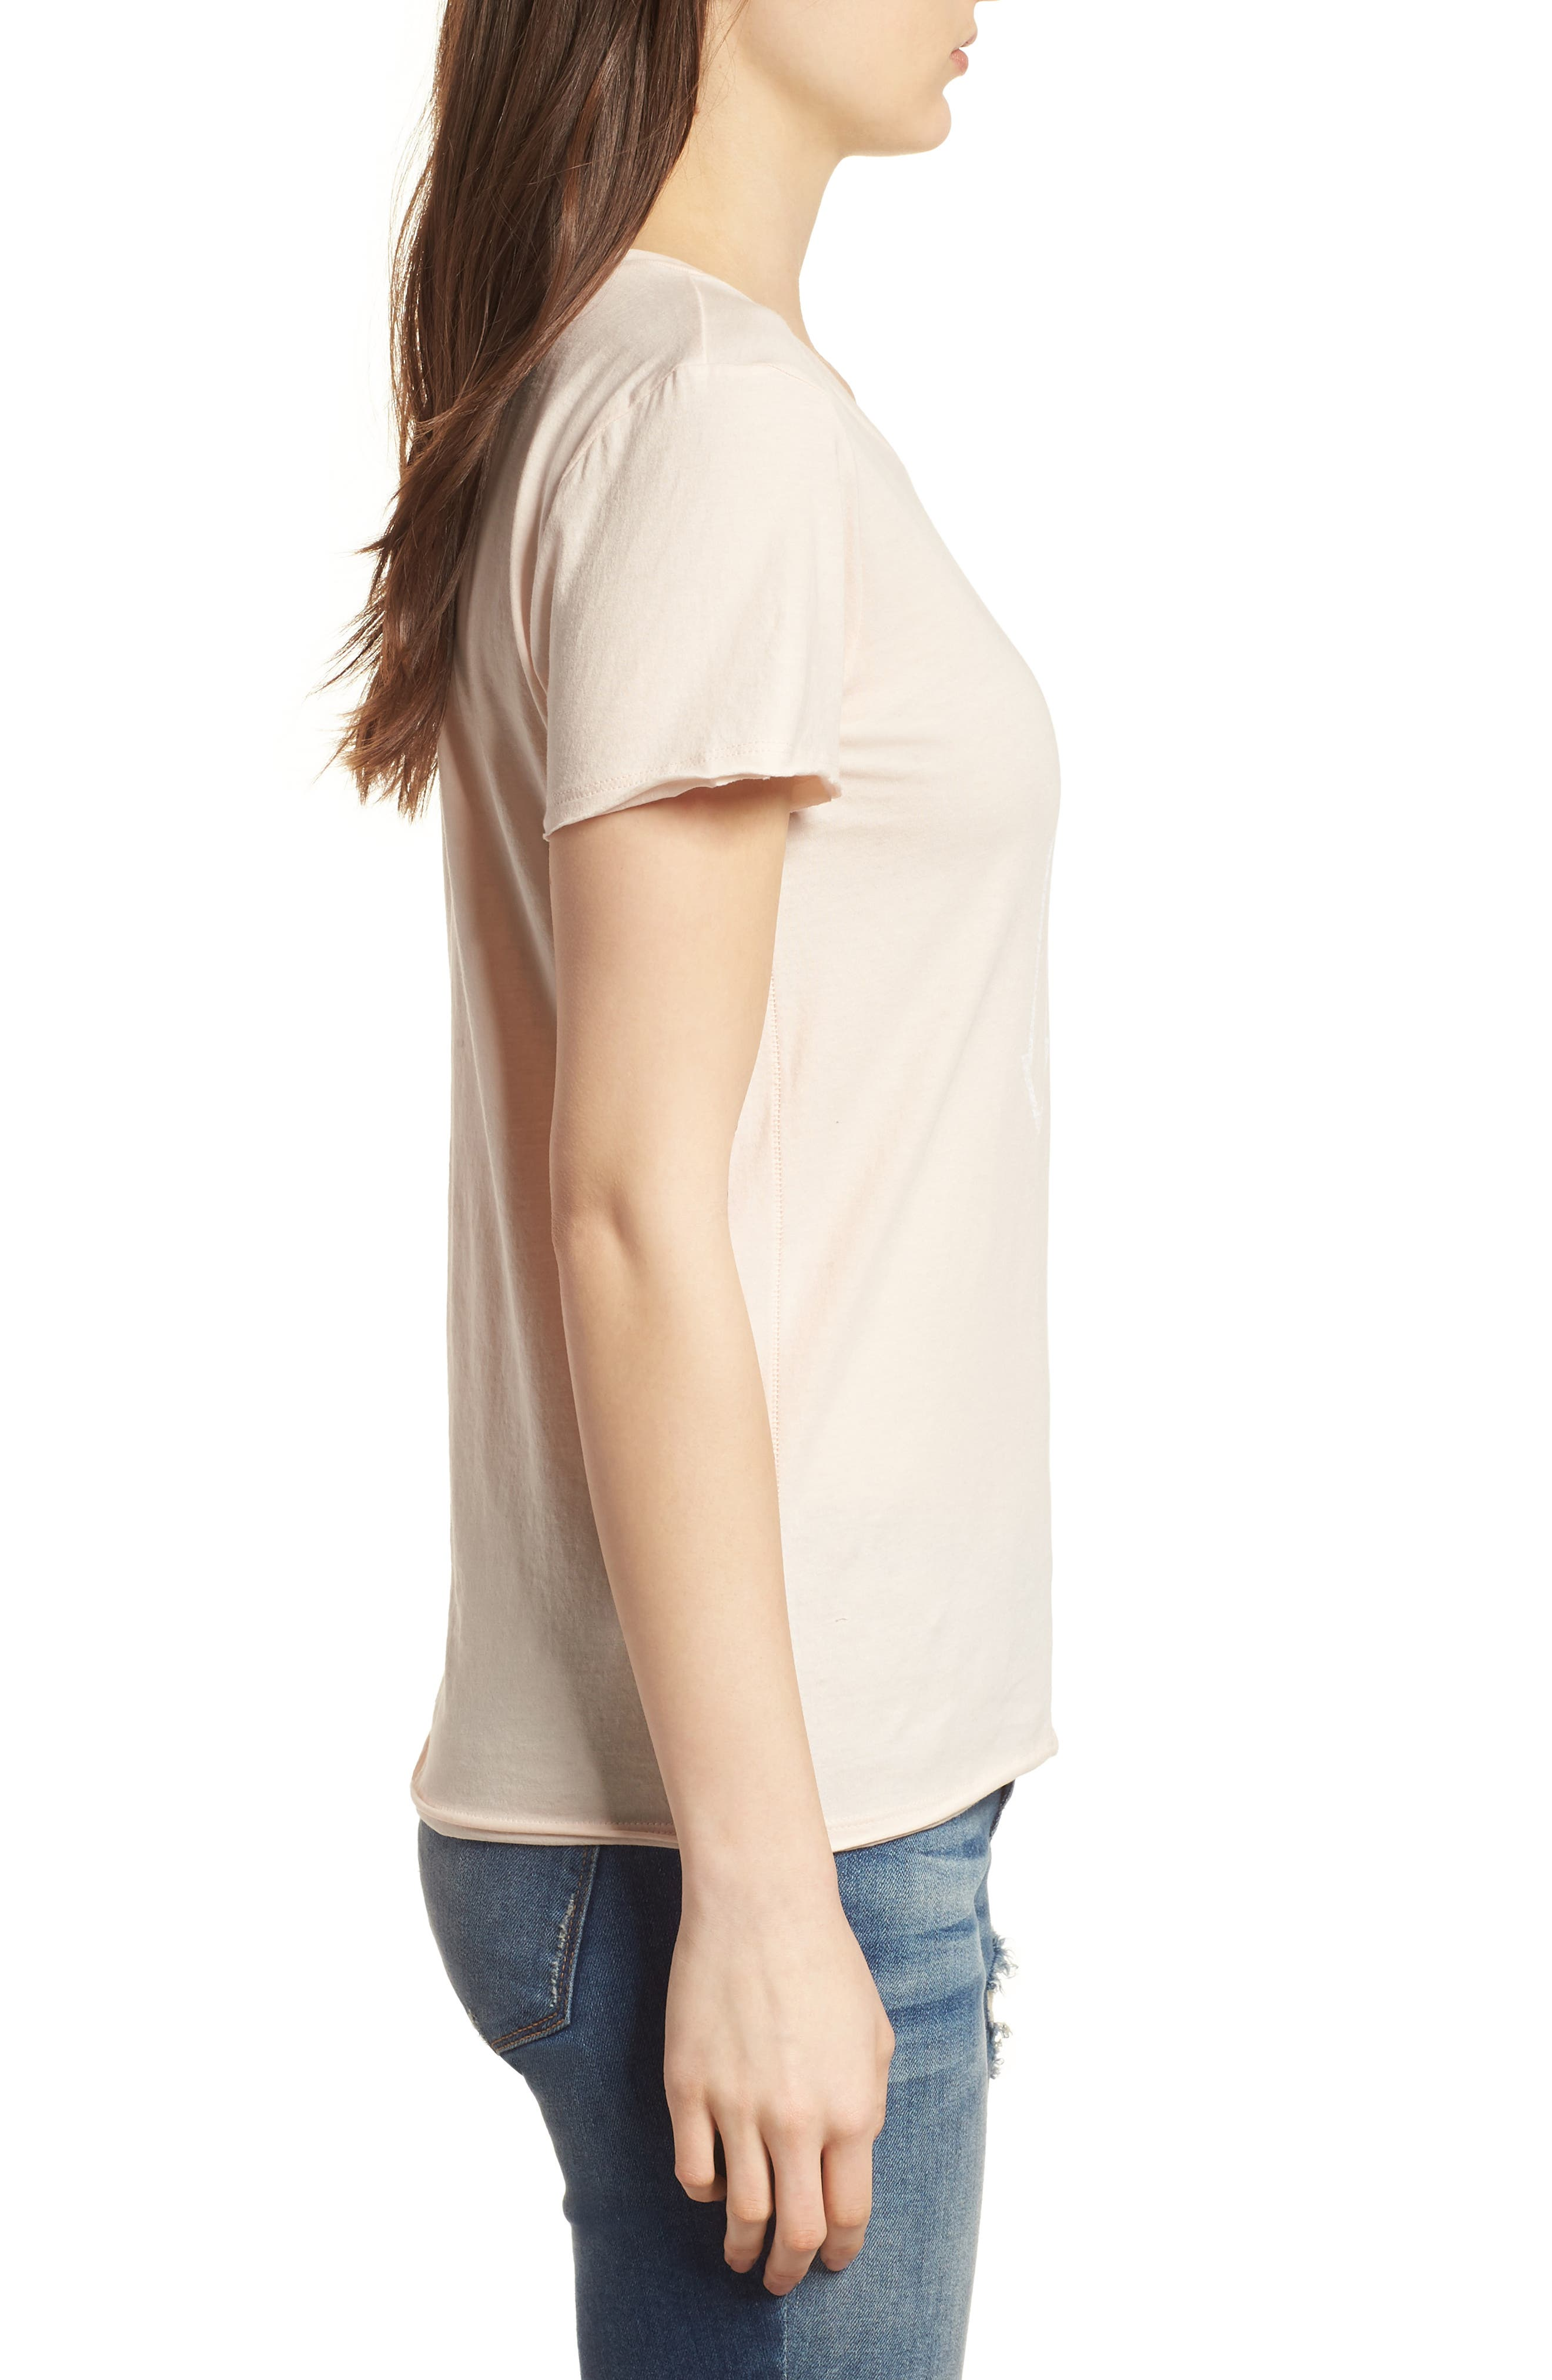 Seattle Mariners Fader Letter Tee,                             Alternate thumbnail 3, color,                             Blush